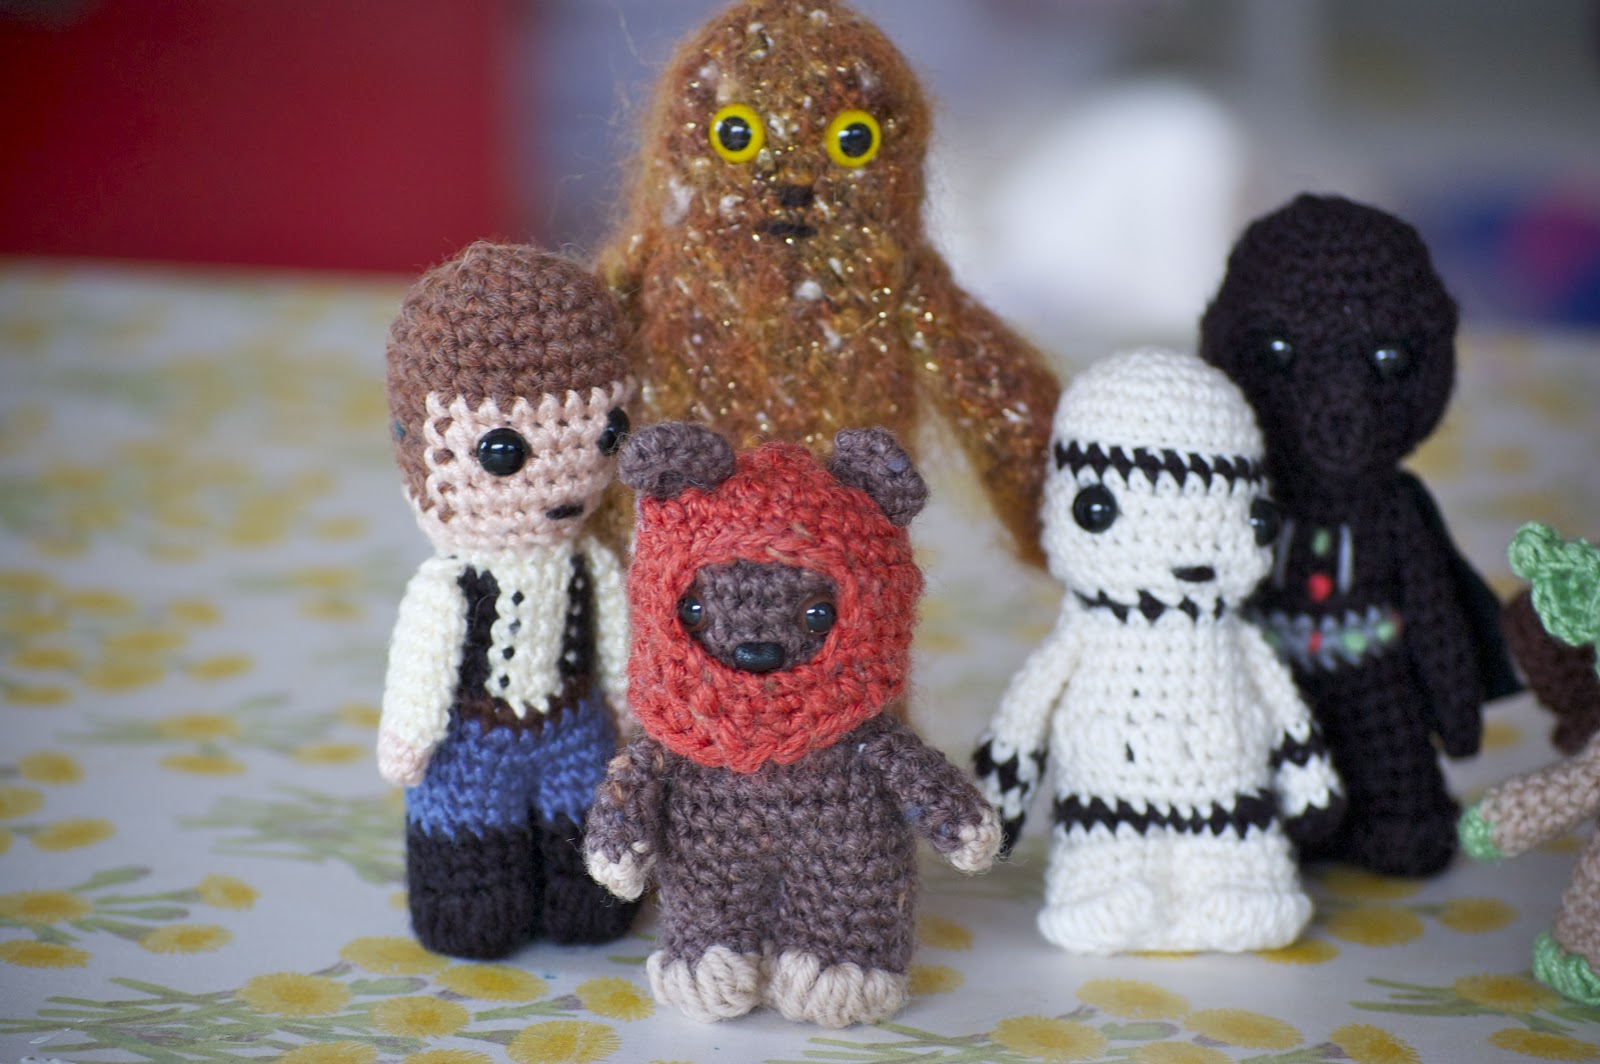 Amigurumi Star Wars Patterns : Free crochet patterns for star wars characters ~ pakbit for .